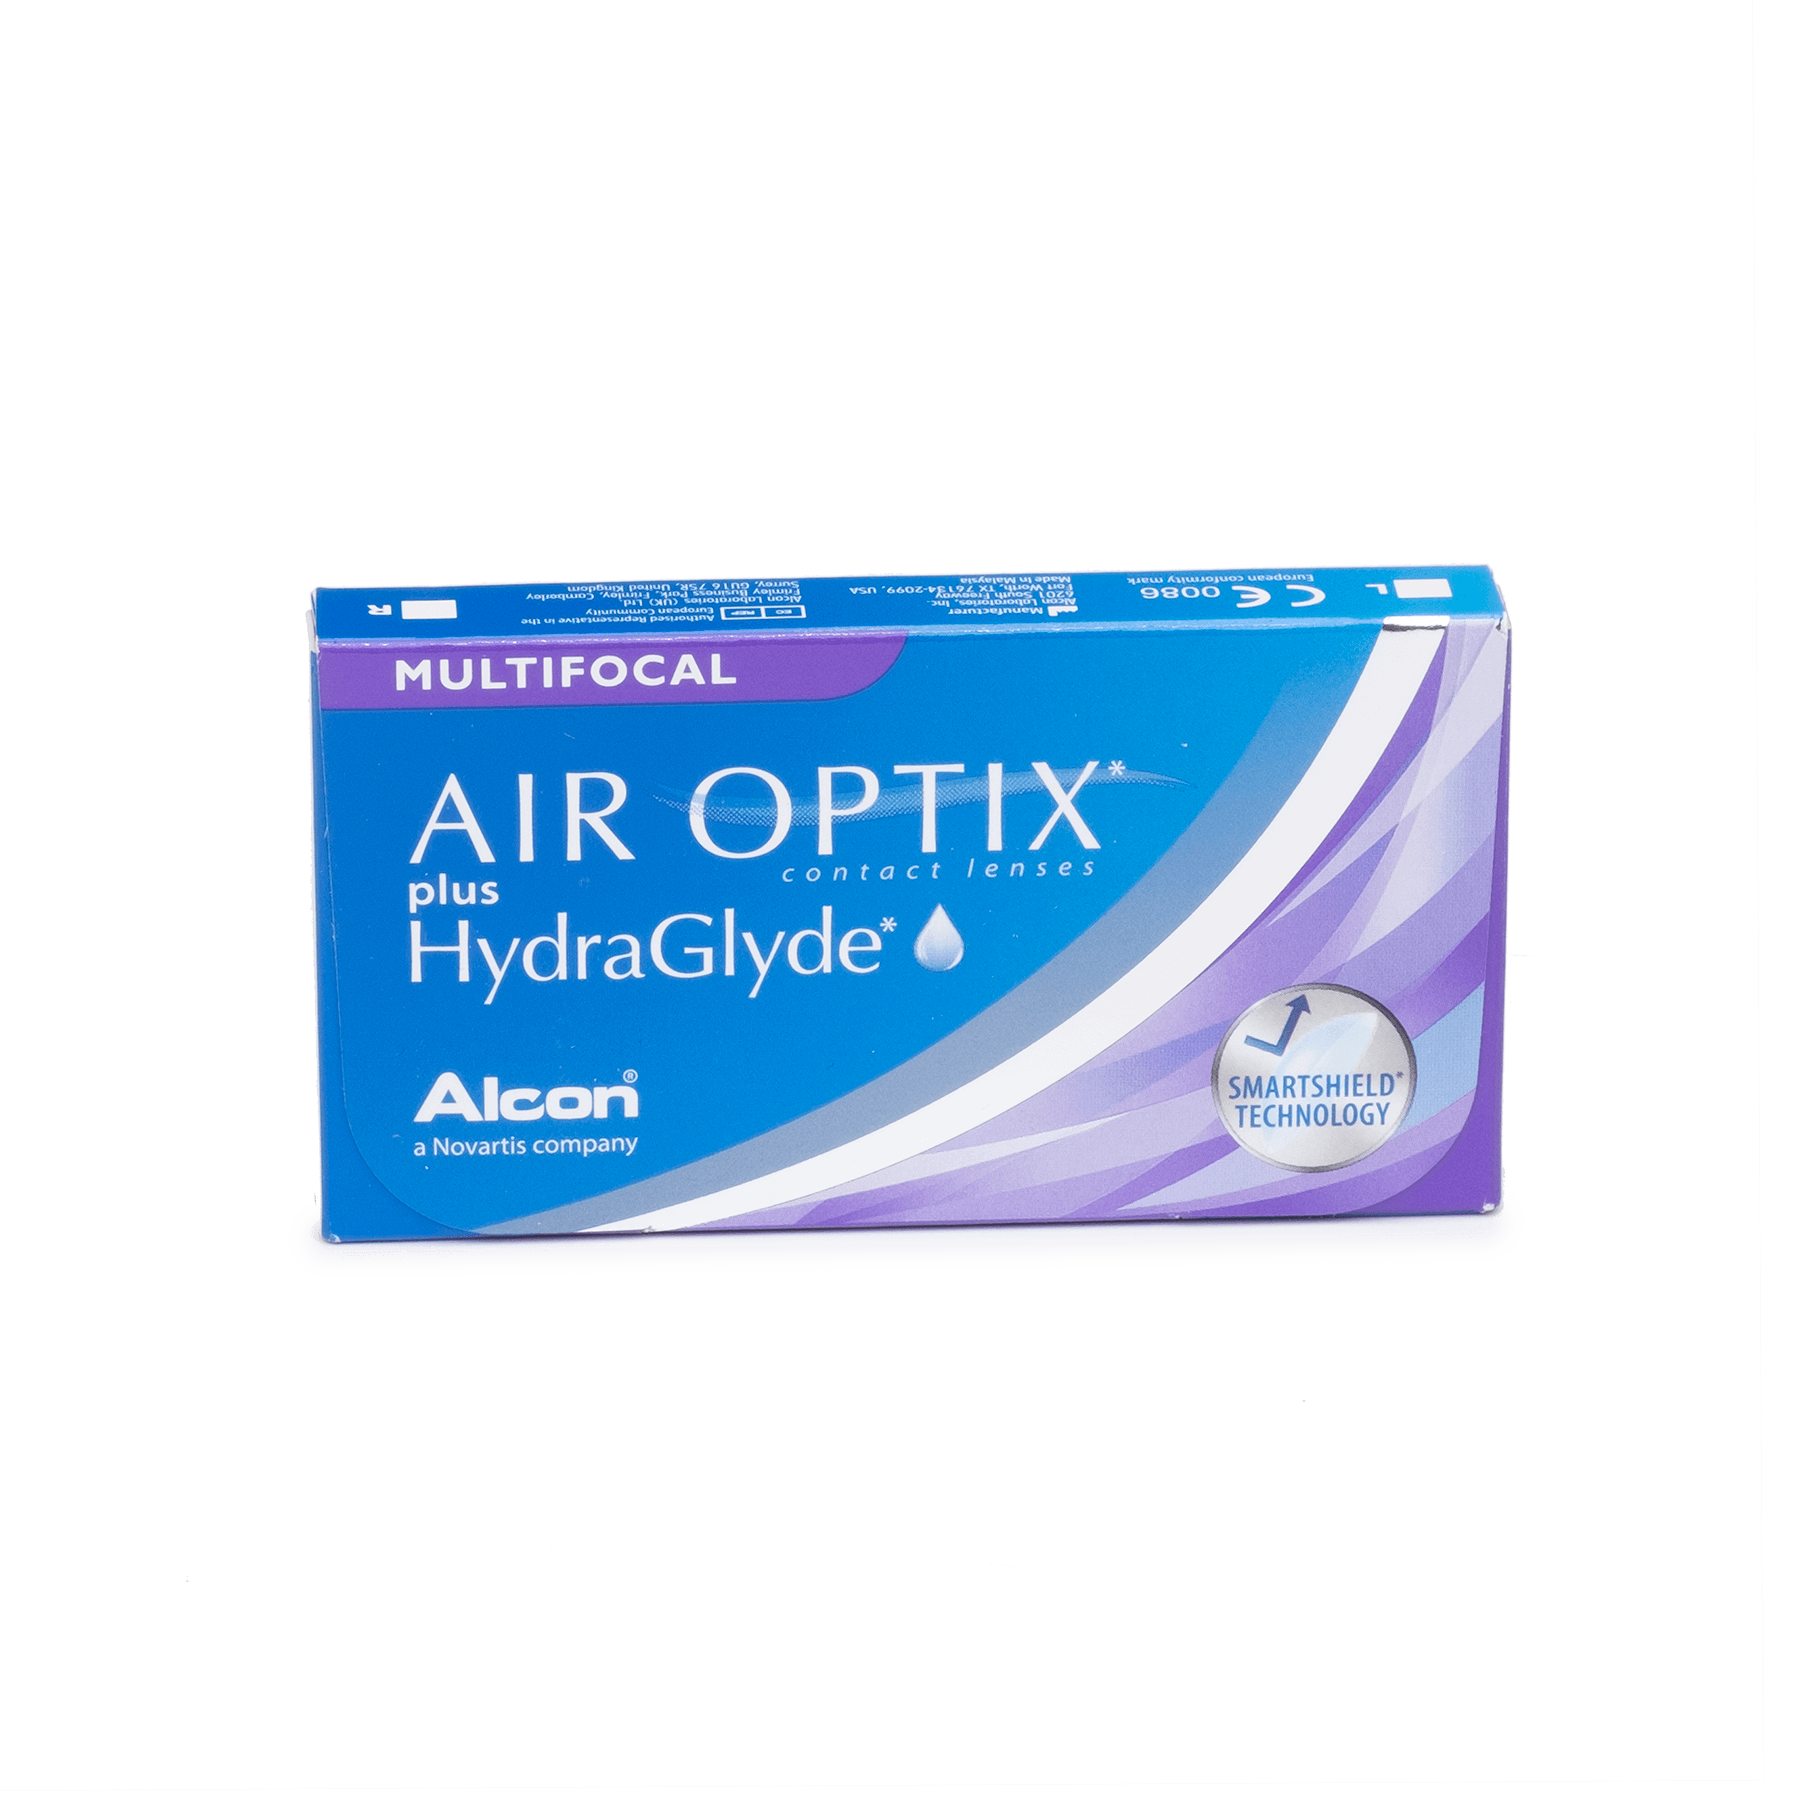 Air Optix plus HydraGlyde Multifocal 6pk*